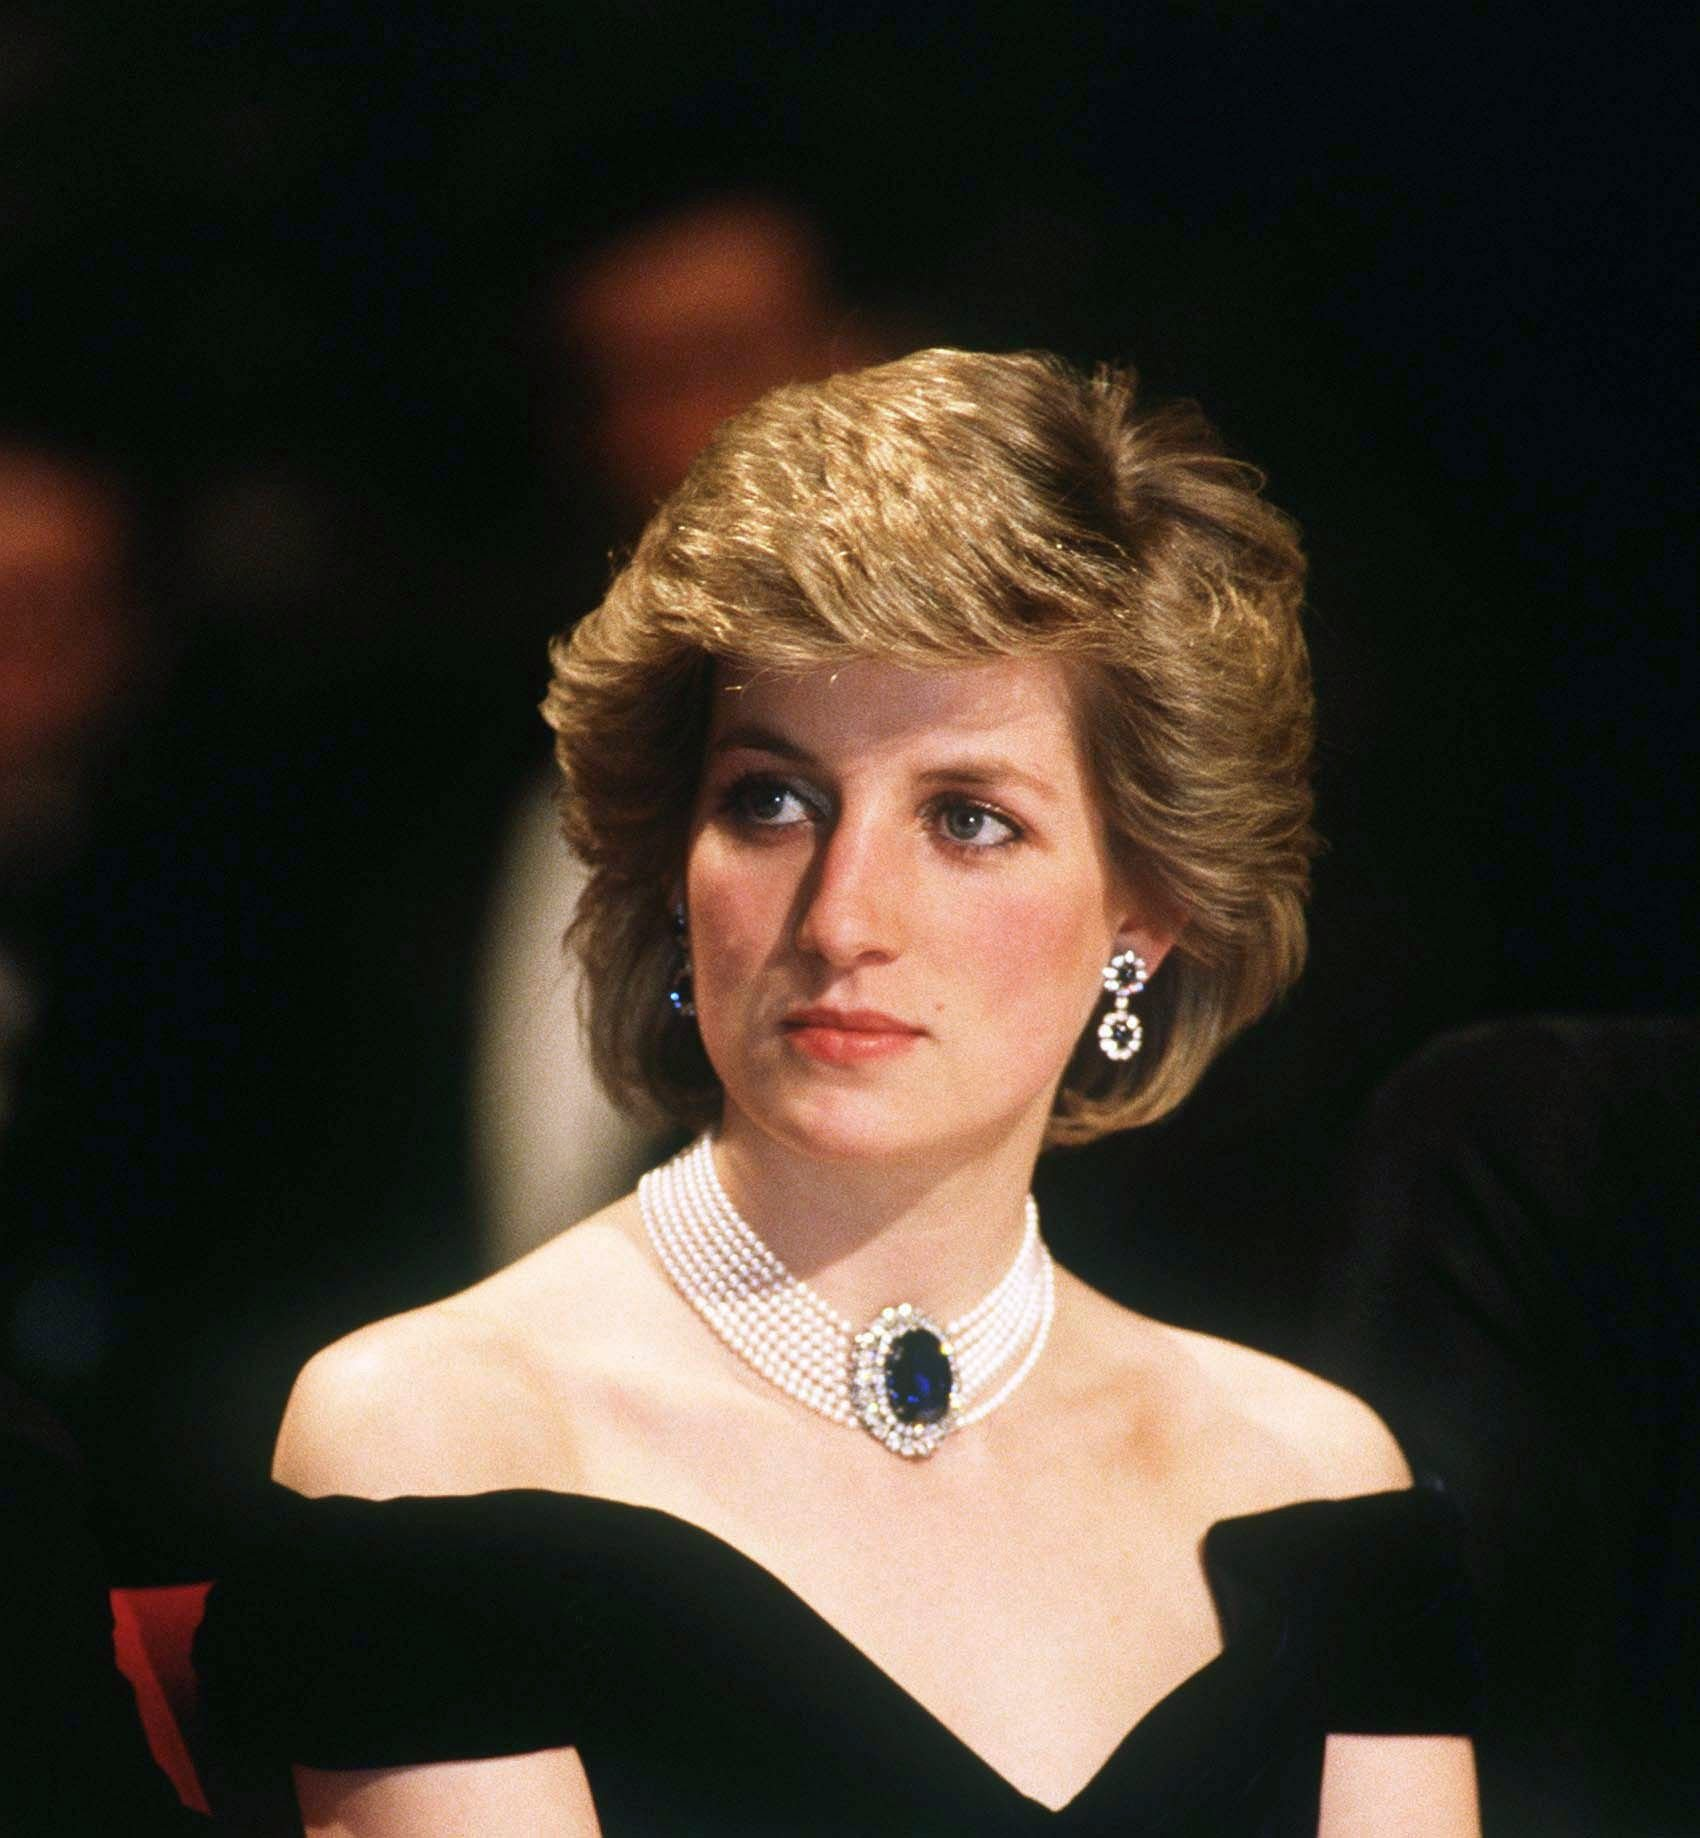 Princess Diana at a state banquet on April 16, 1986   Photo: Getty Images